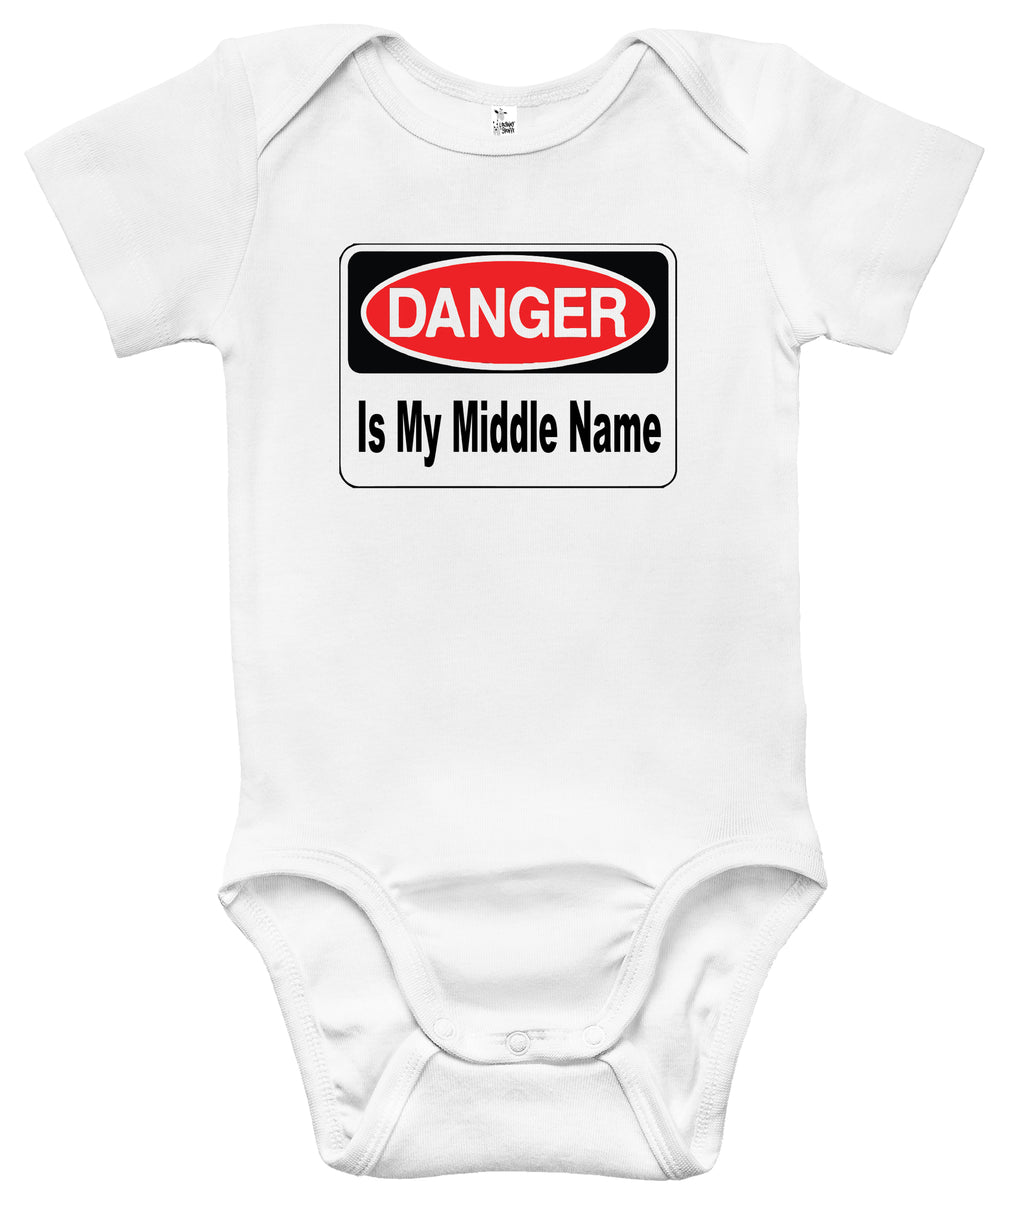 Baby Bodysuit - Danger Is My Middle Name